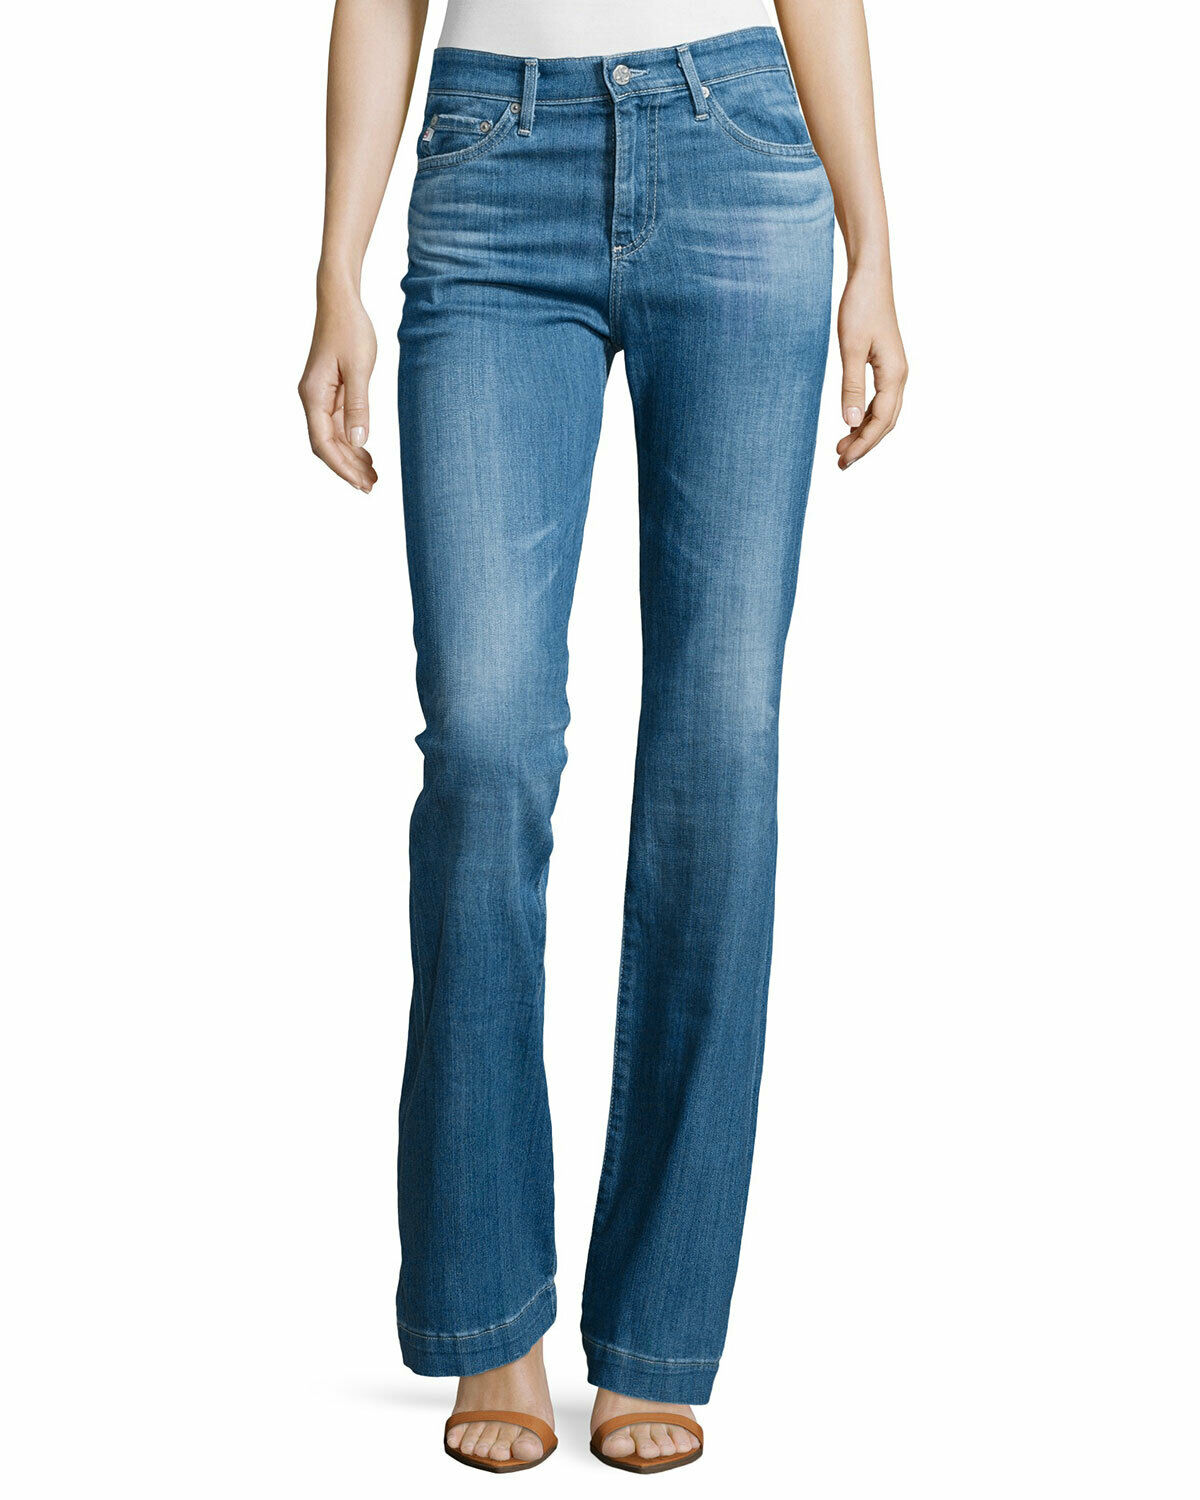 AG Adriano goldschmied Janis High Rise Flare Jeans 25 Years Classic US Size 24